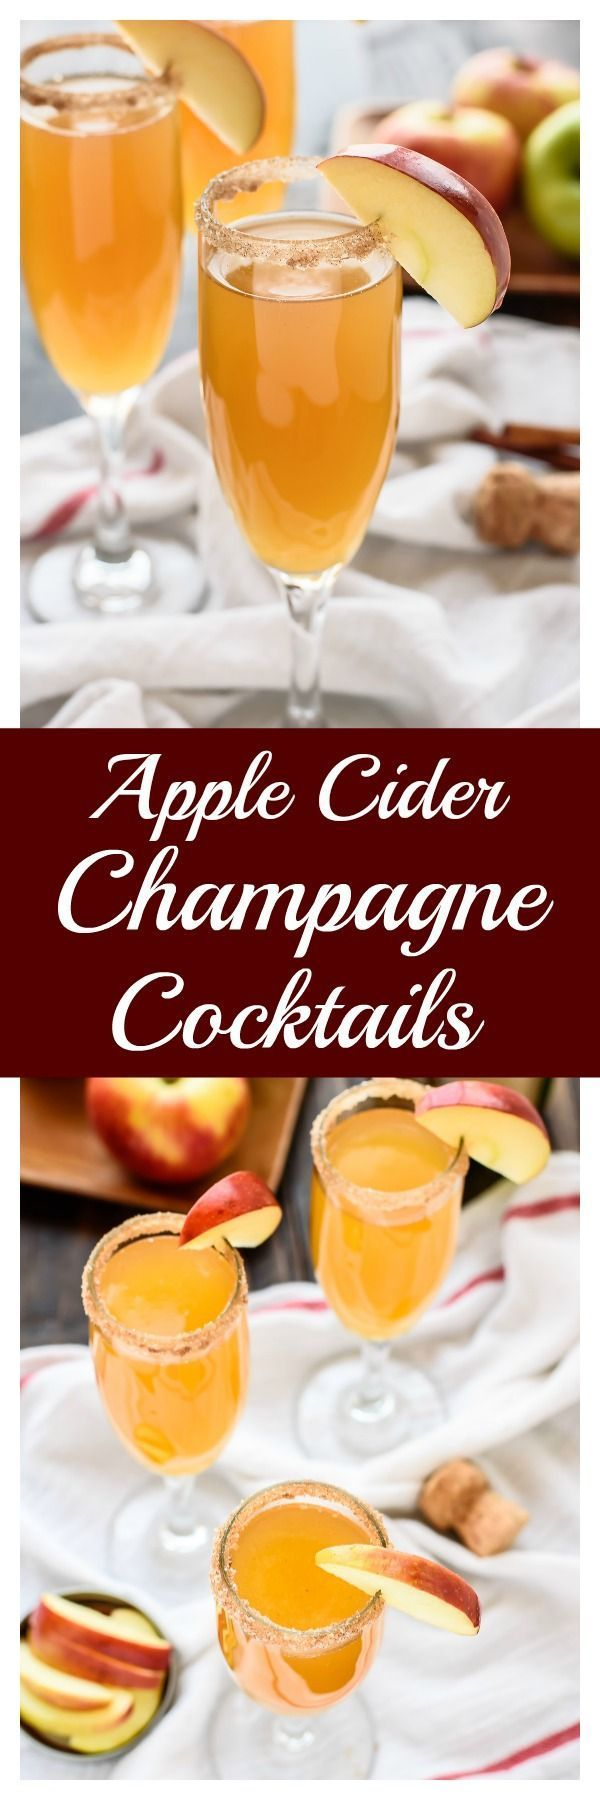 Only 3 ingredients, elegant, and delicious, these easy Apple Cider Champagne Cocktails are sure to become your signature drink!